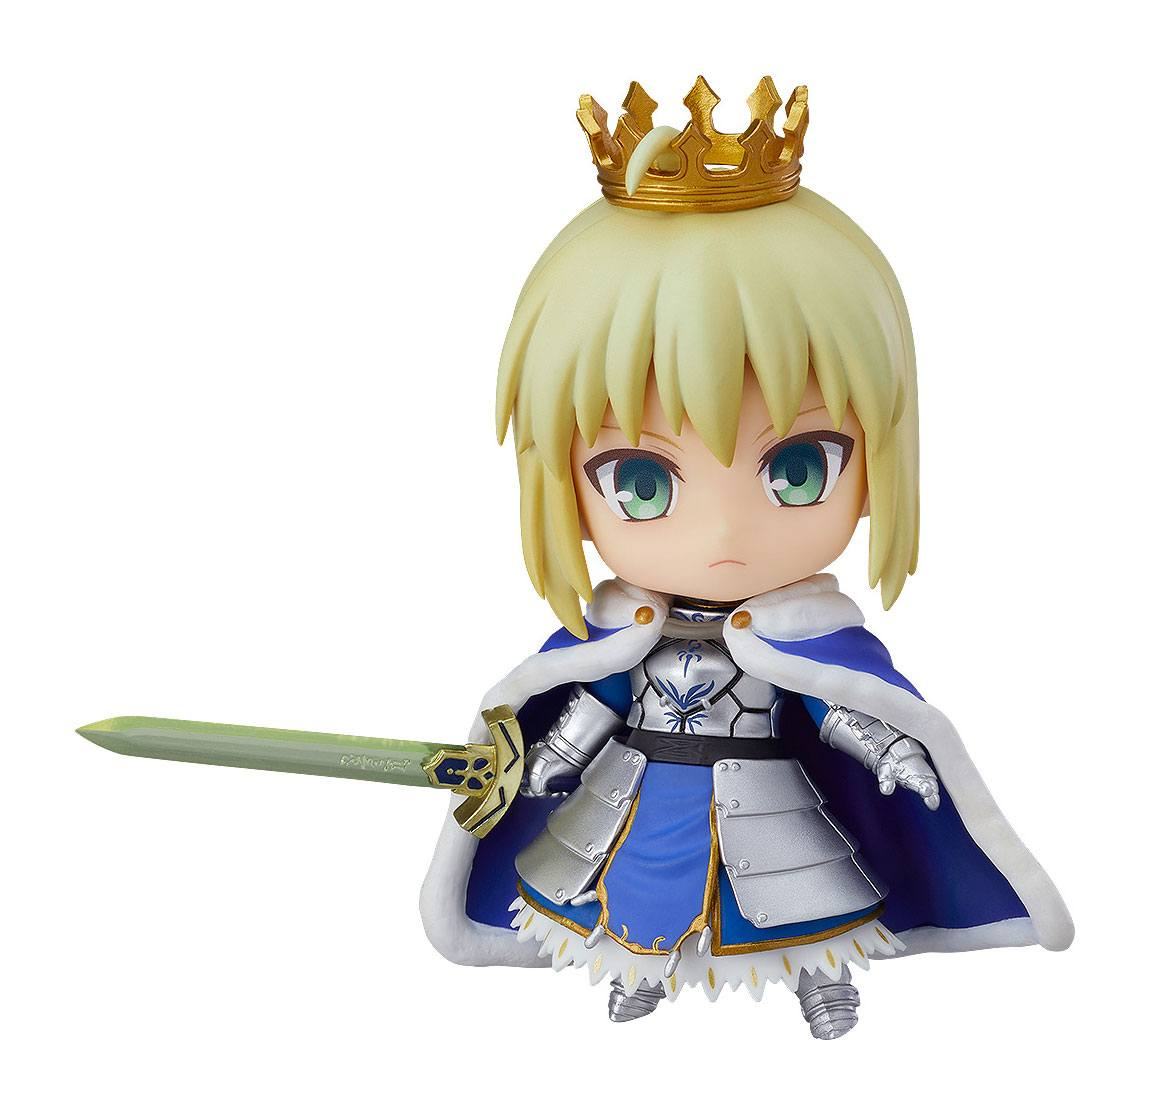 Fate/Grand Order Nendoroid Action Figure Saber/Altria Pendragon: True Name Revealed Ver. 10 cm